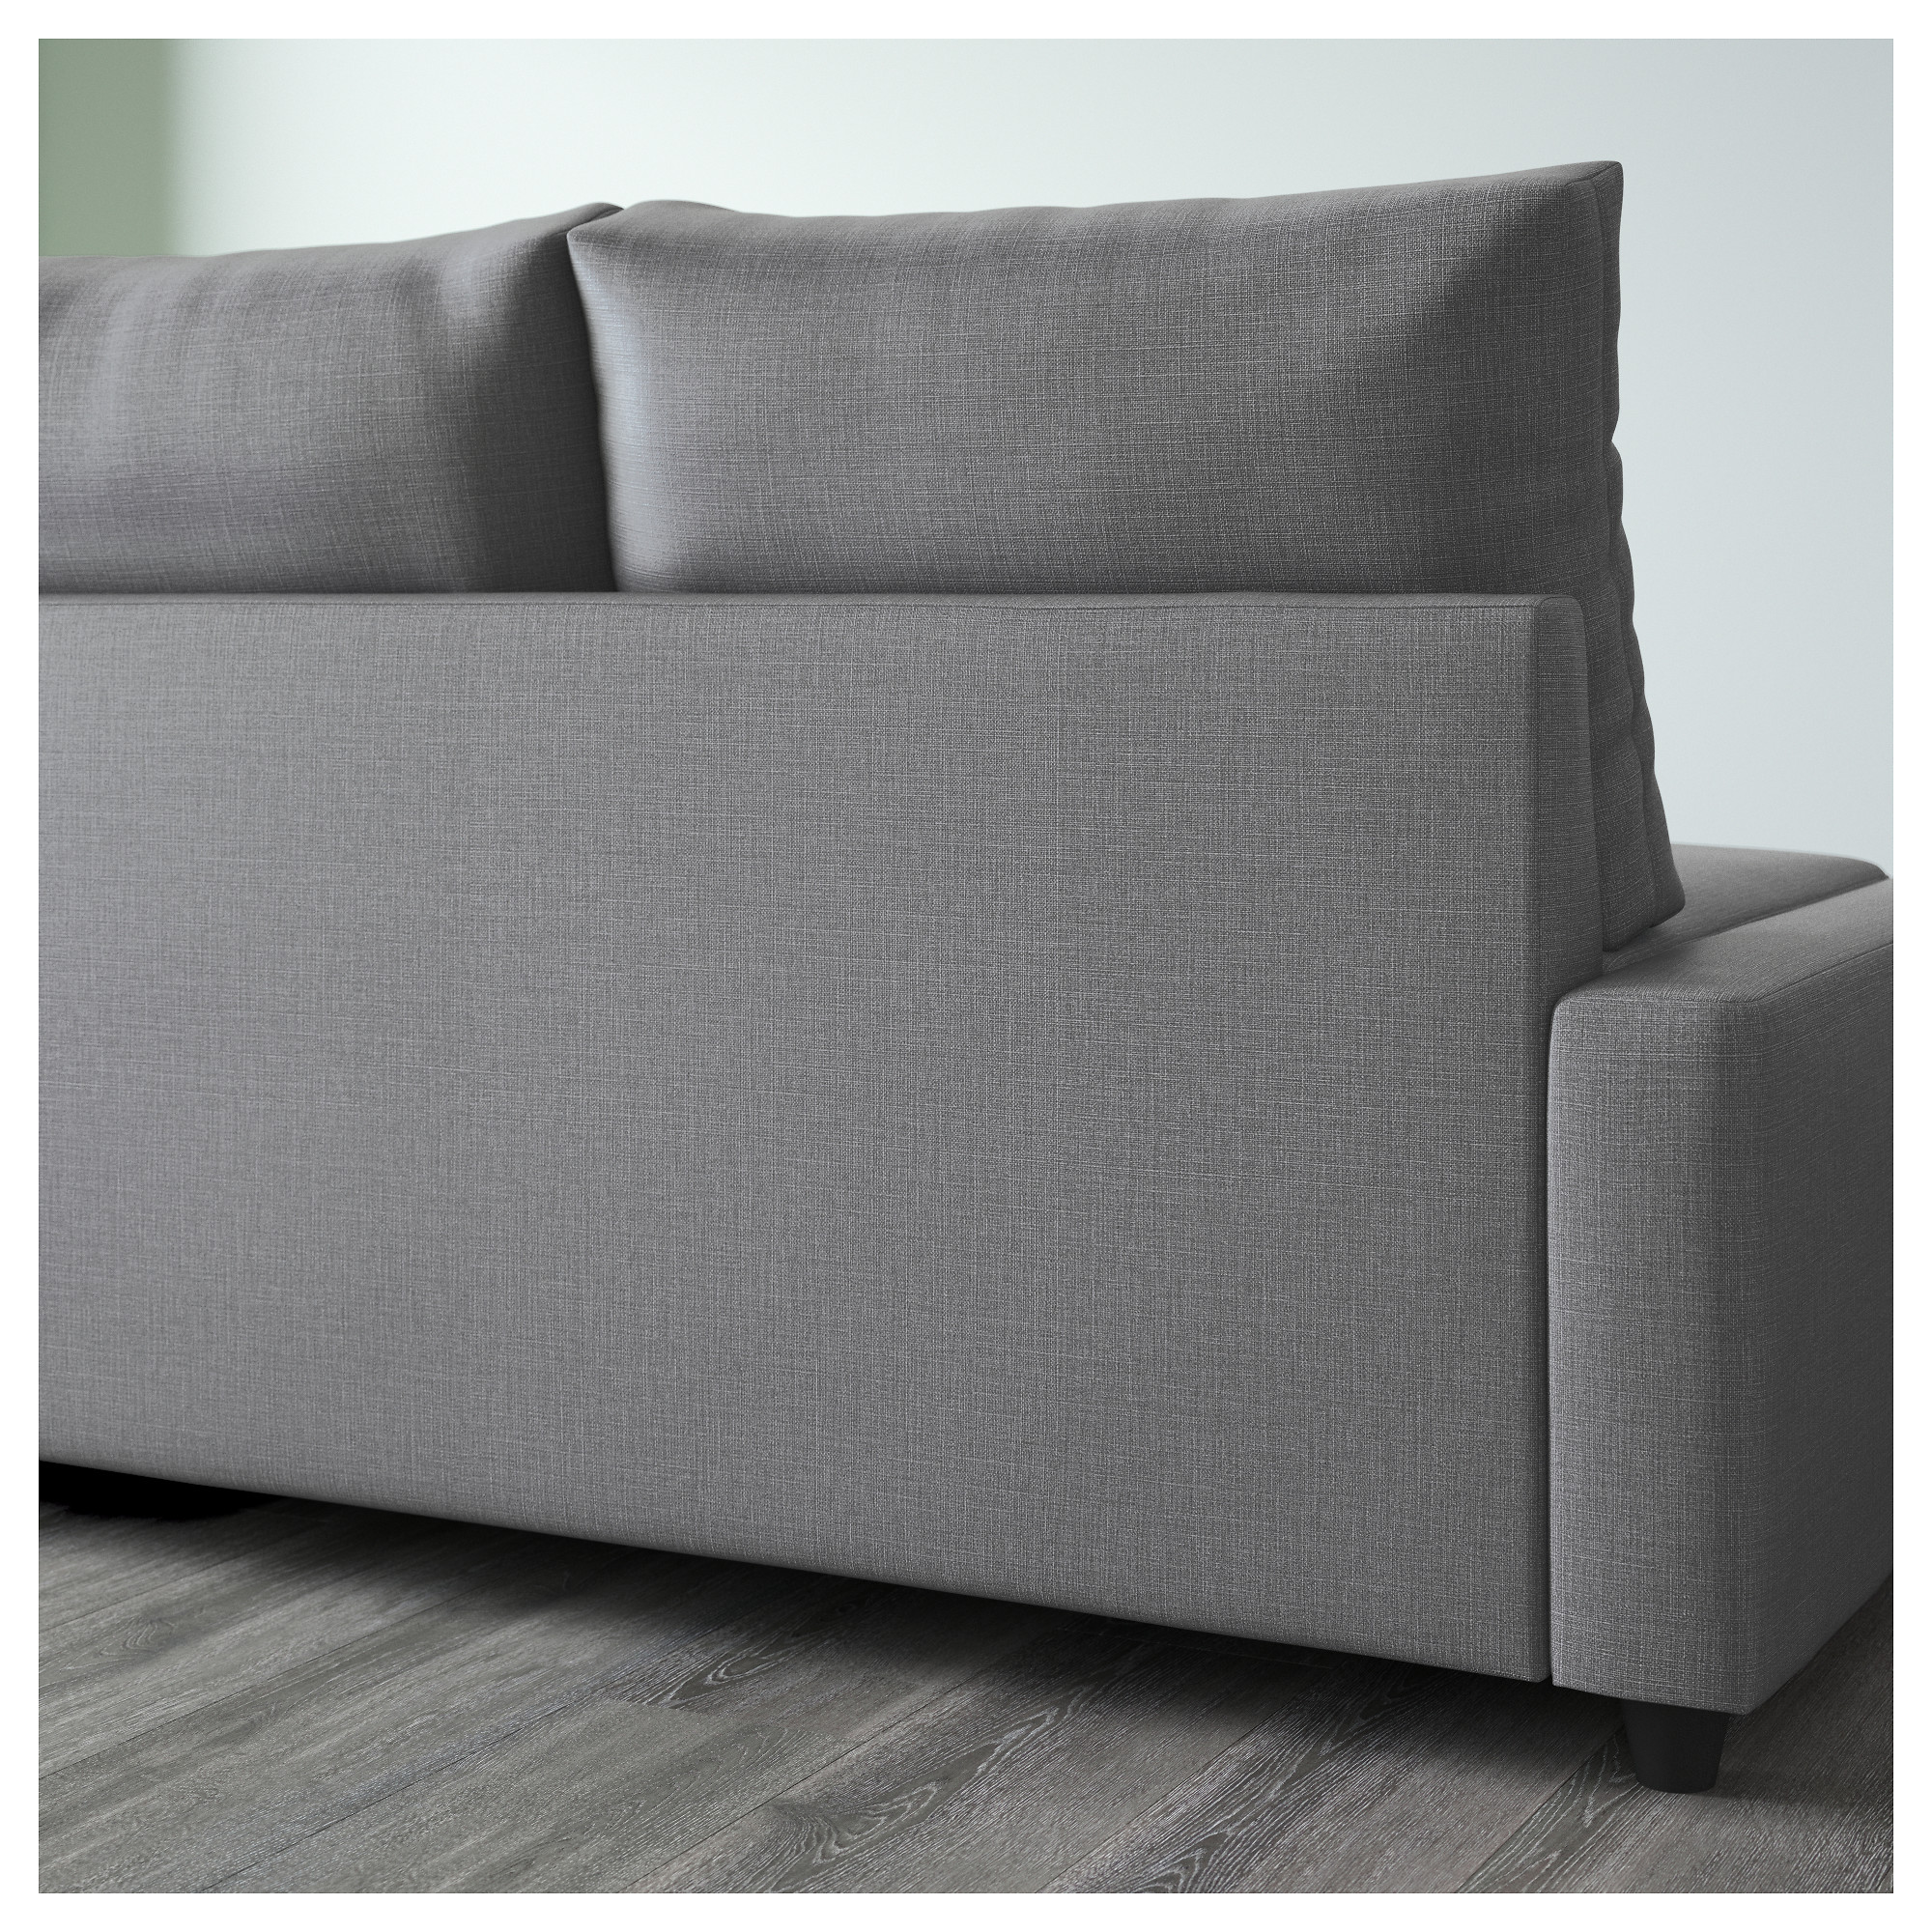 FRIHETEN - corner sofa-bed with storage, Skiftebo dark grey ...